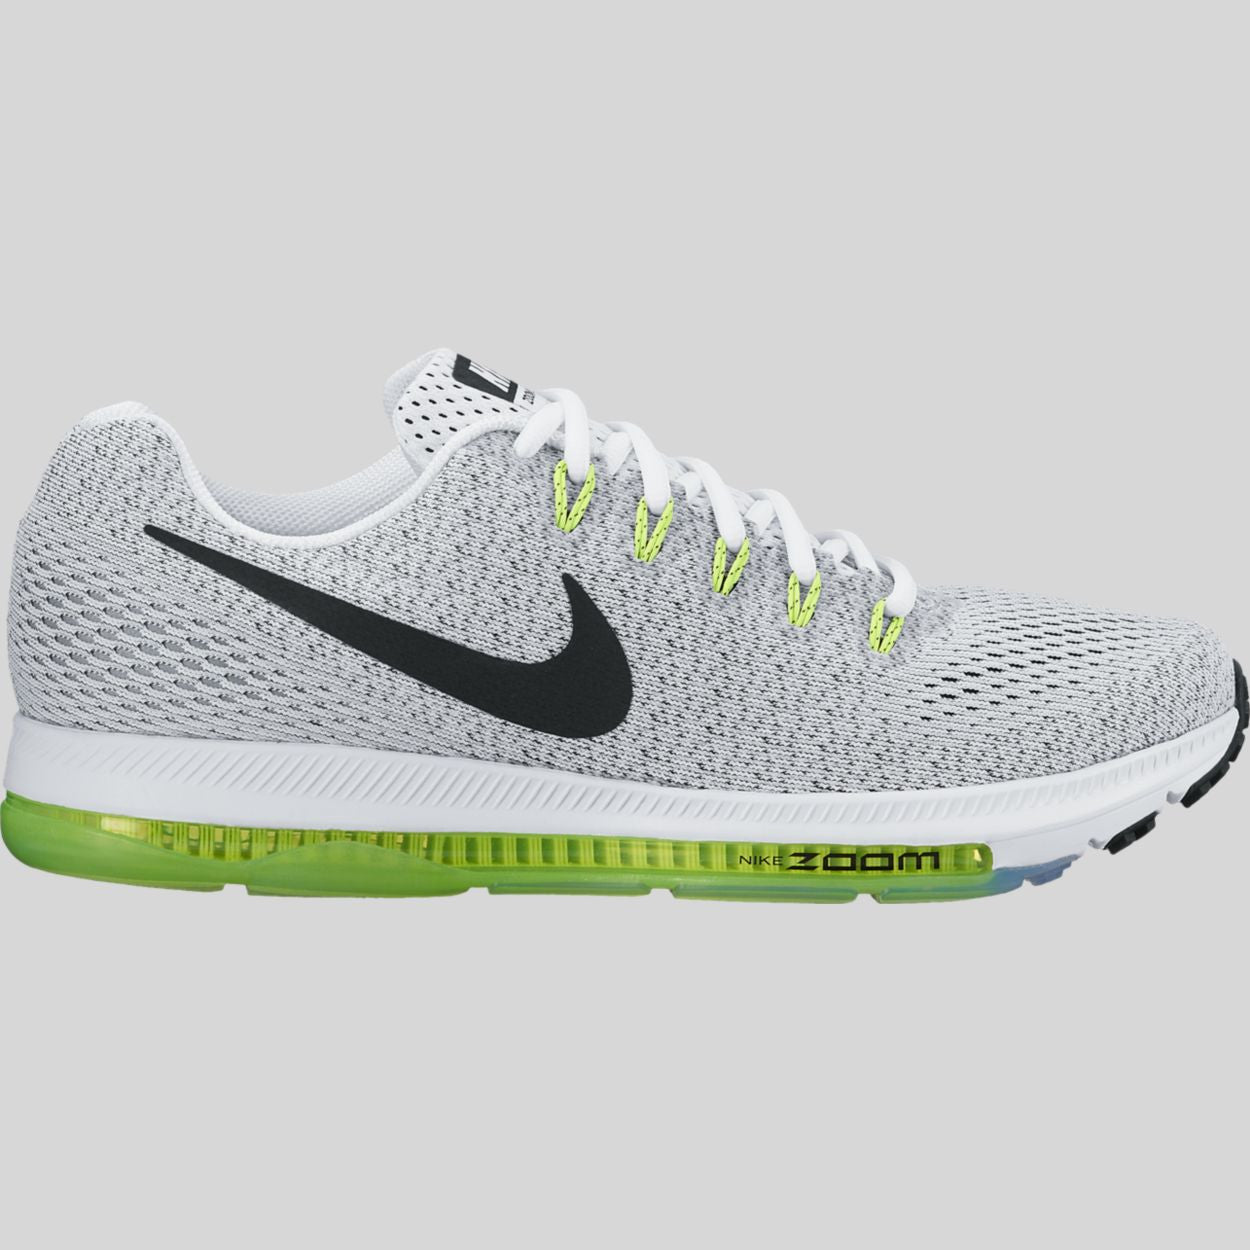 5ca1a43e7a807 Nike Zoom All Out Low White Black Volt (878670-107)